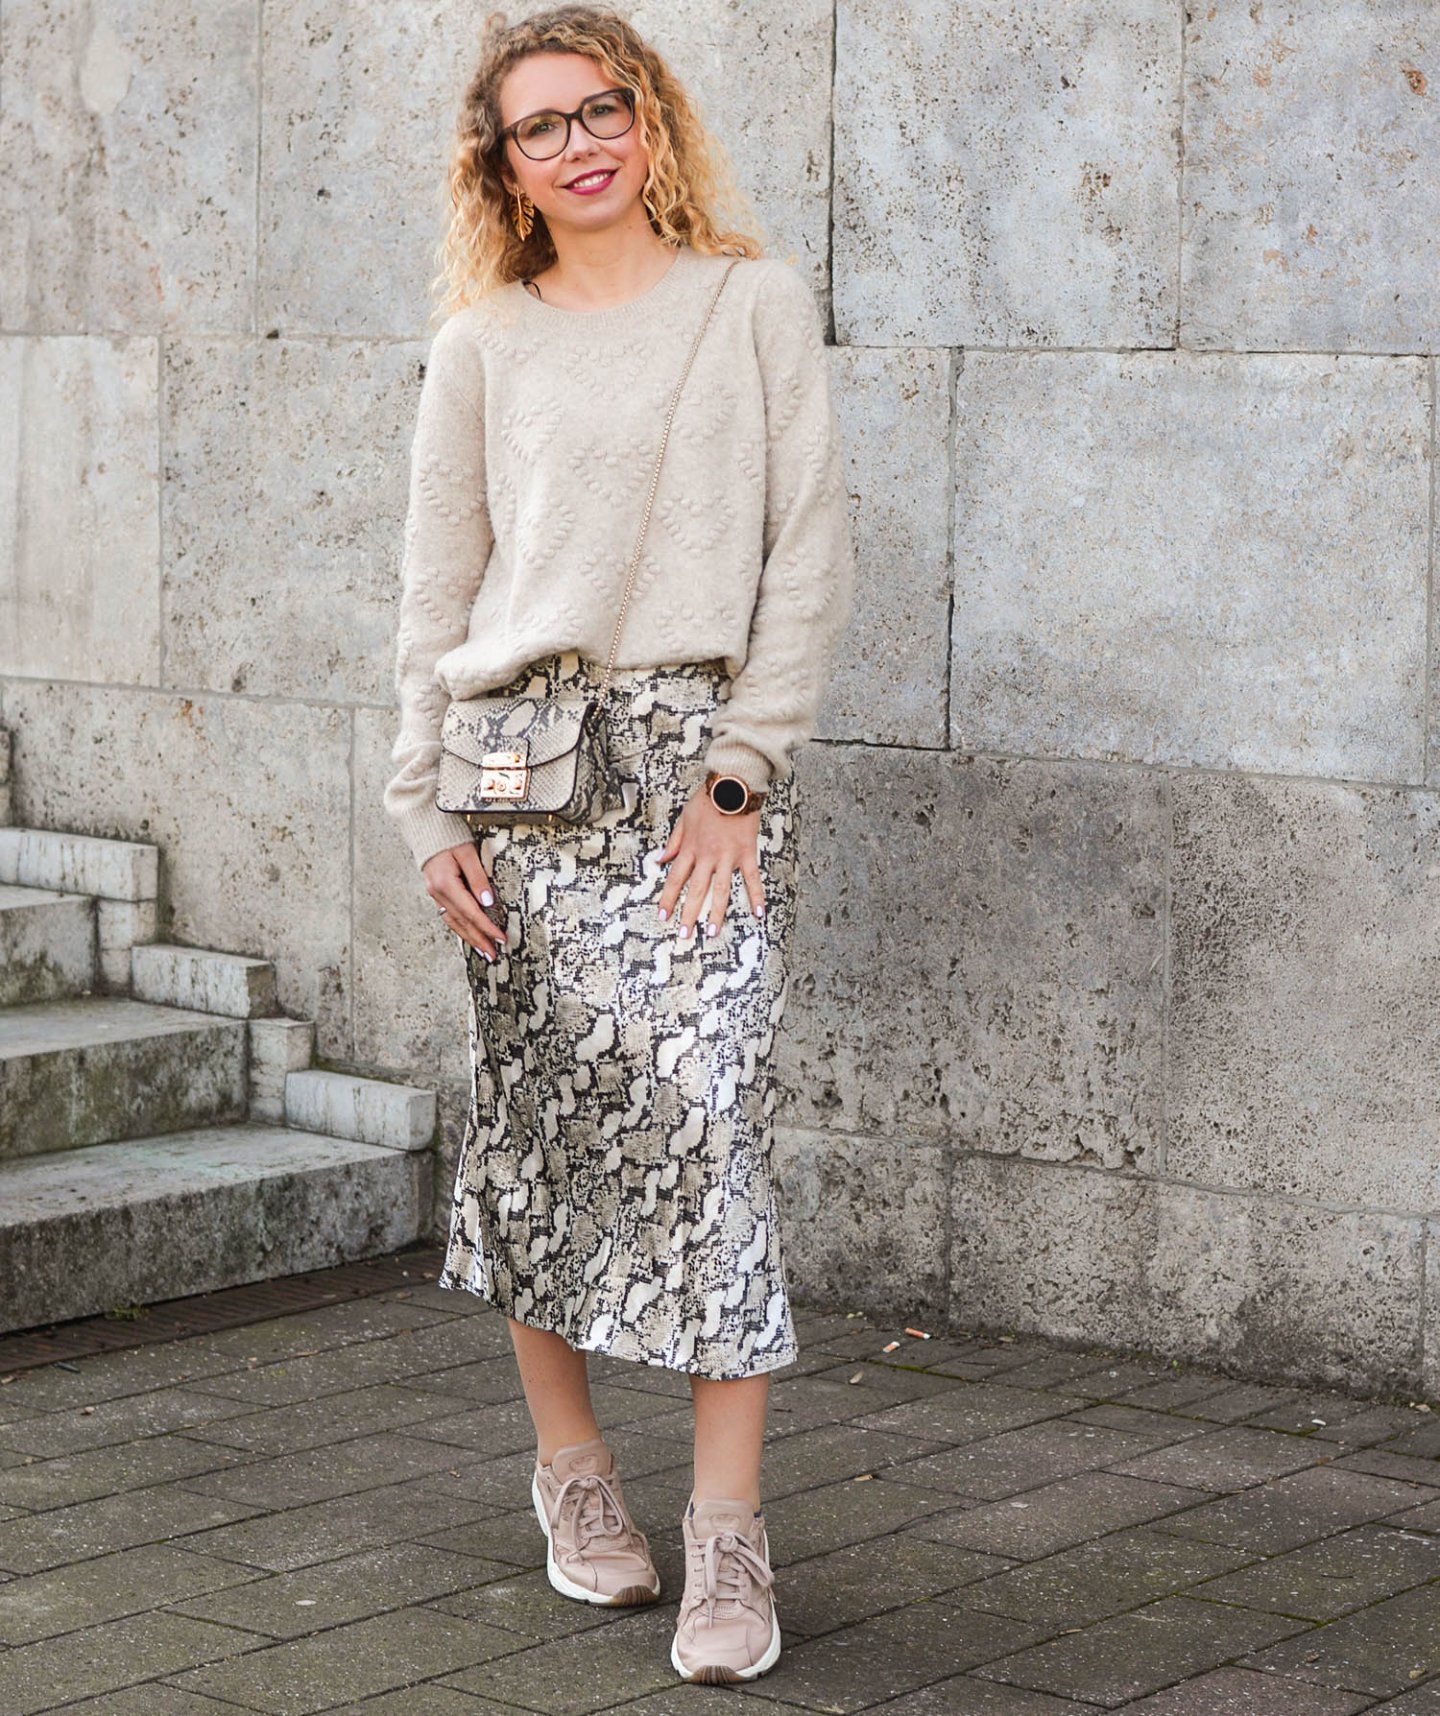 Monochromer-Look-mit-Snake-Print-Kationette-Fashionblog-Germany-Outfit